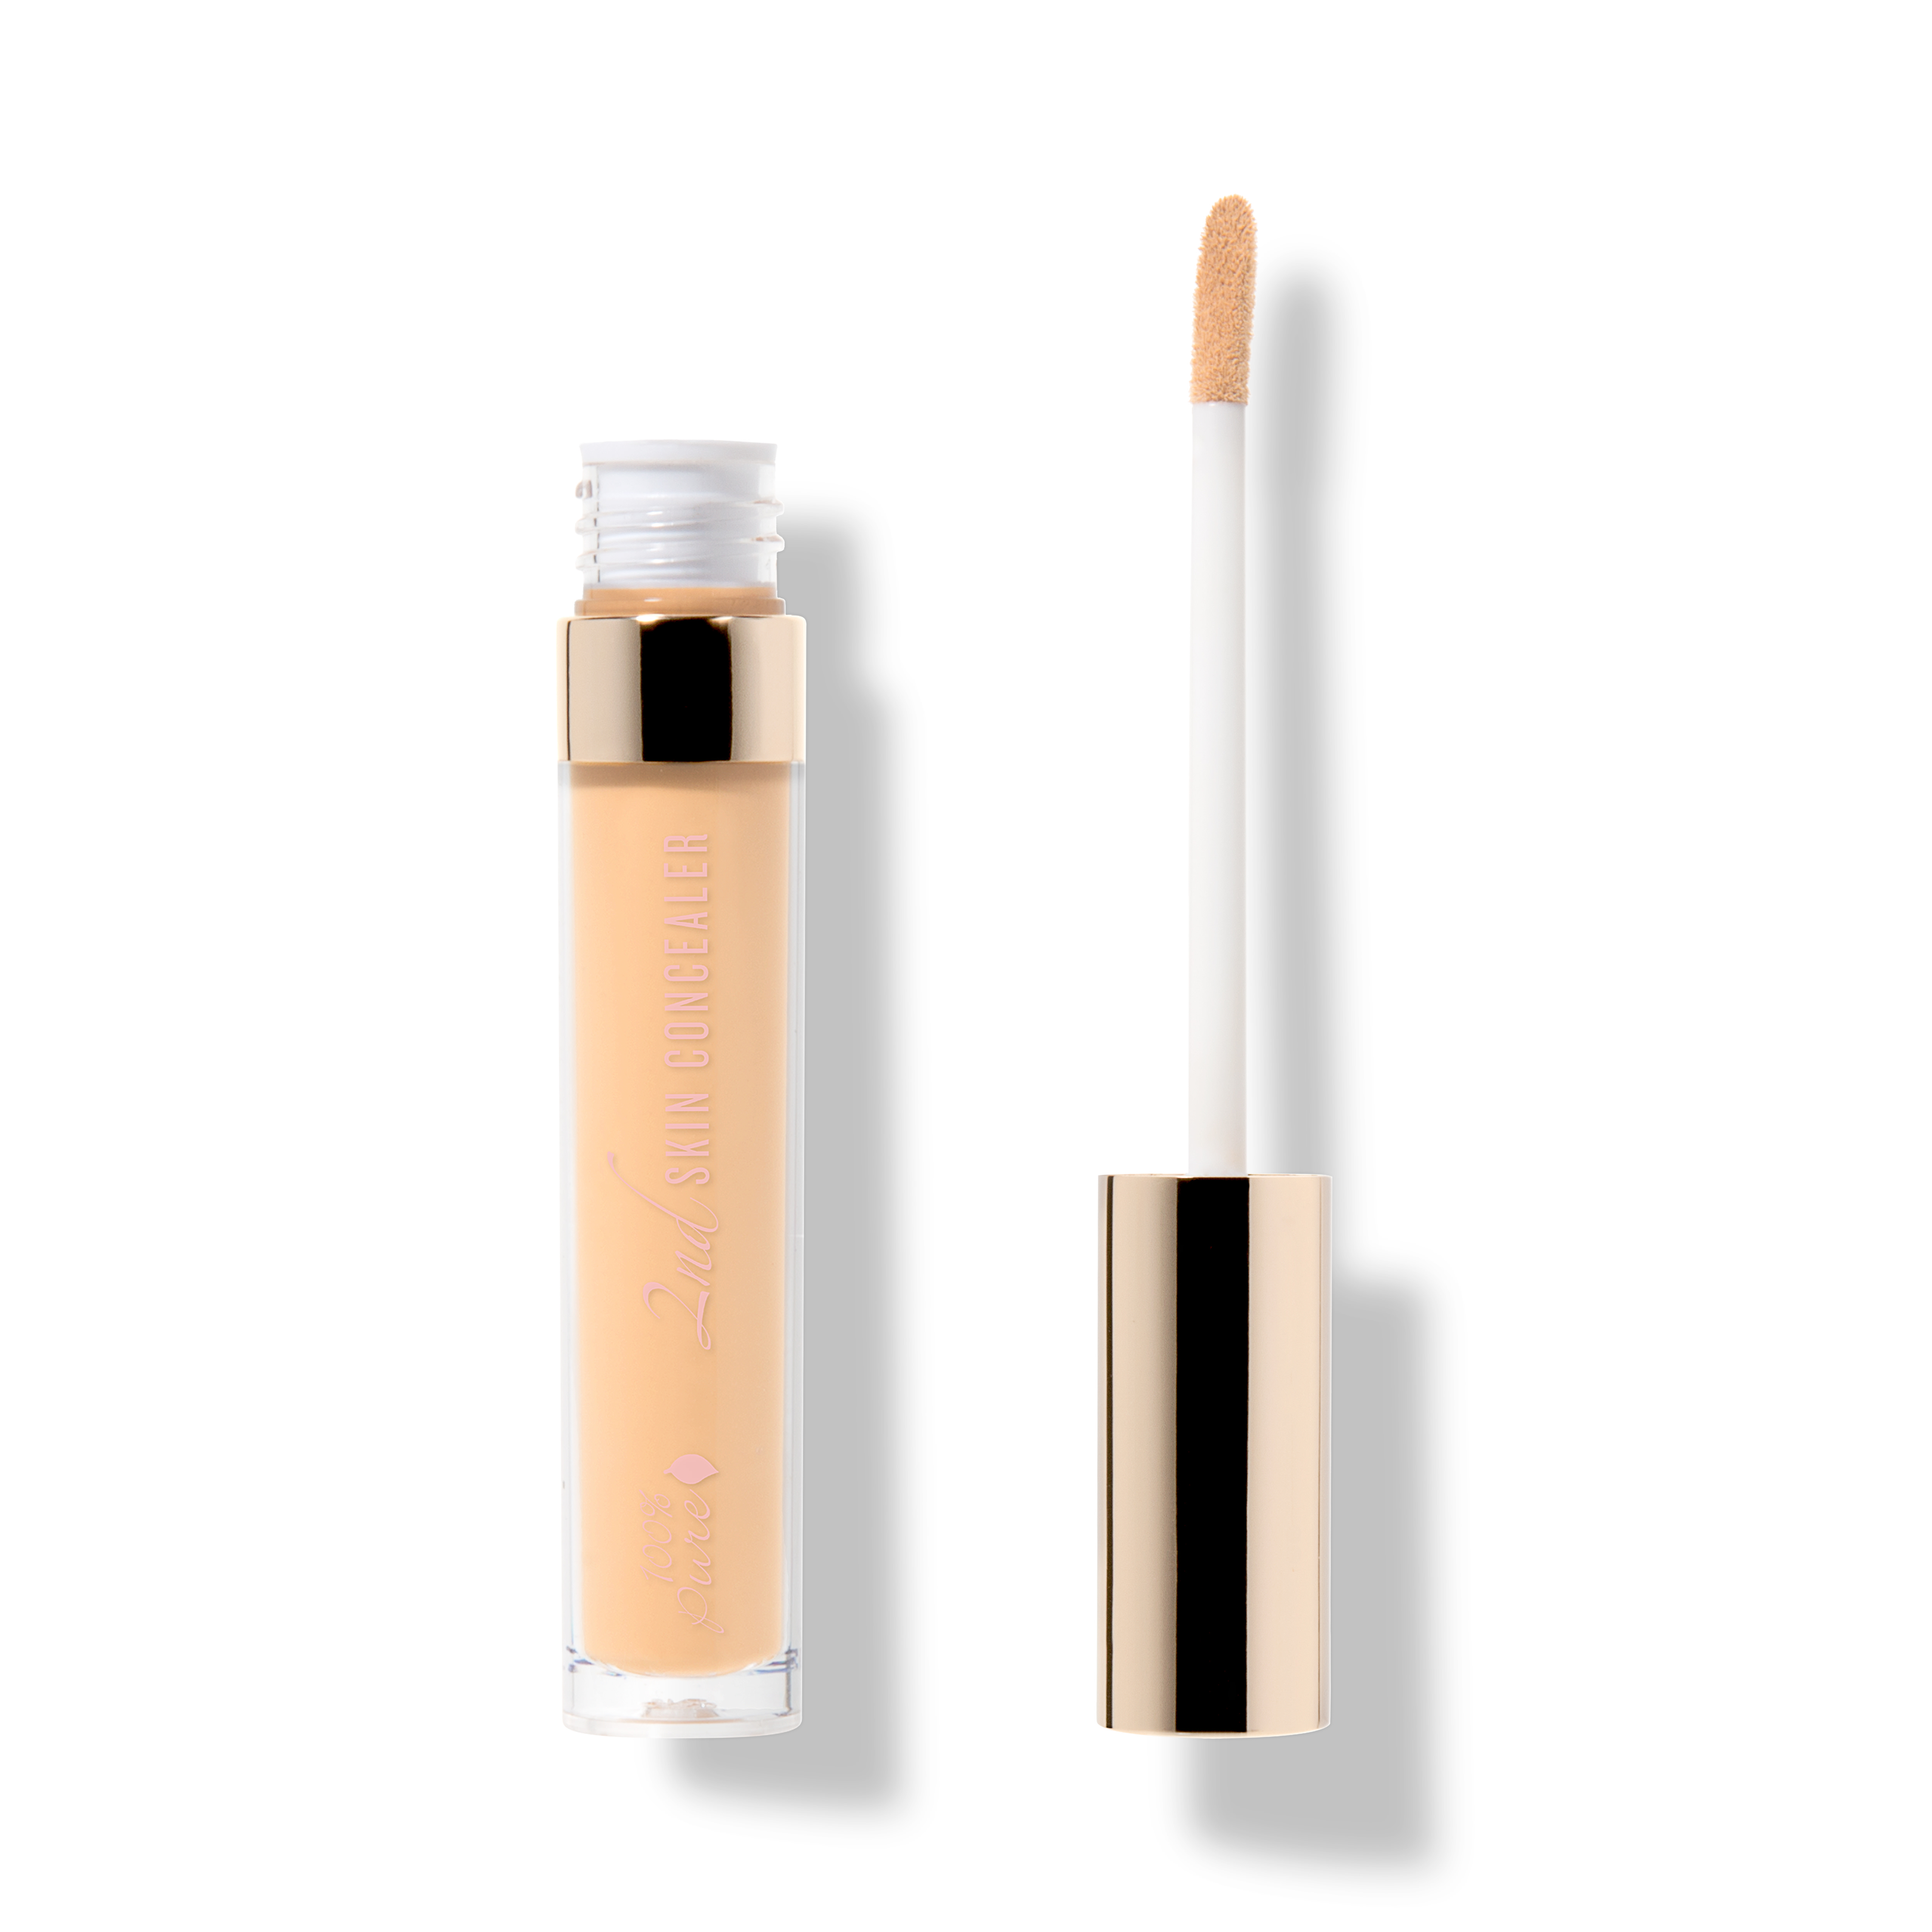 Product Grid - Fruit Pigmented® 2nd Skin Concealer